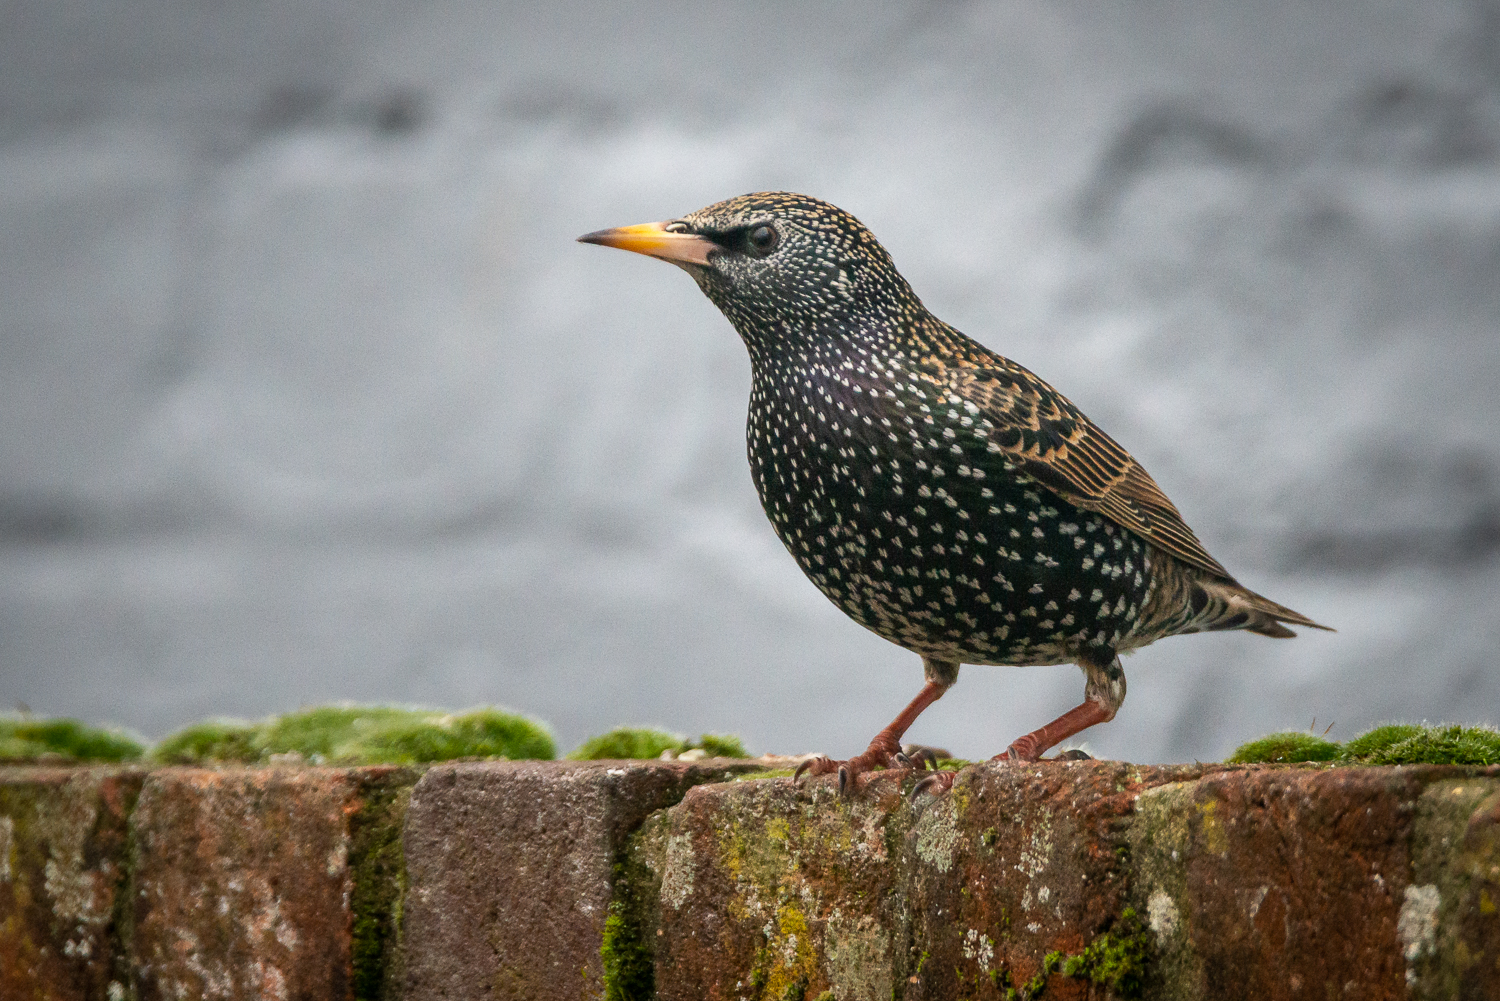 Staring at the Starlings waiting for the Snow